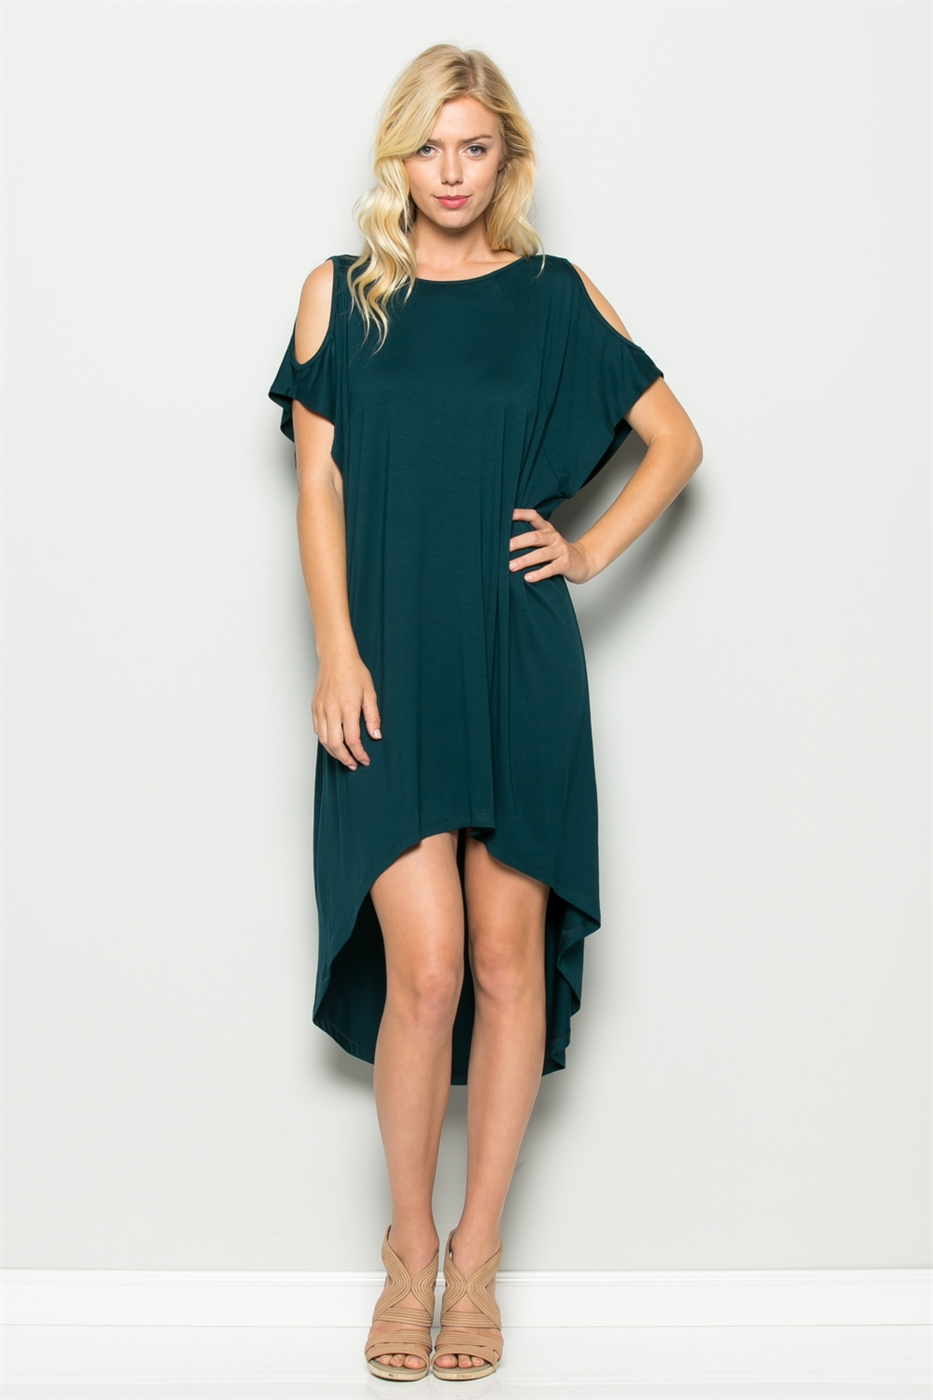 COLD SHOULDER HI-LOW DRESS - orangeshine.com